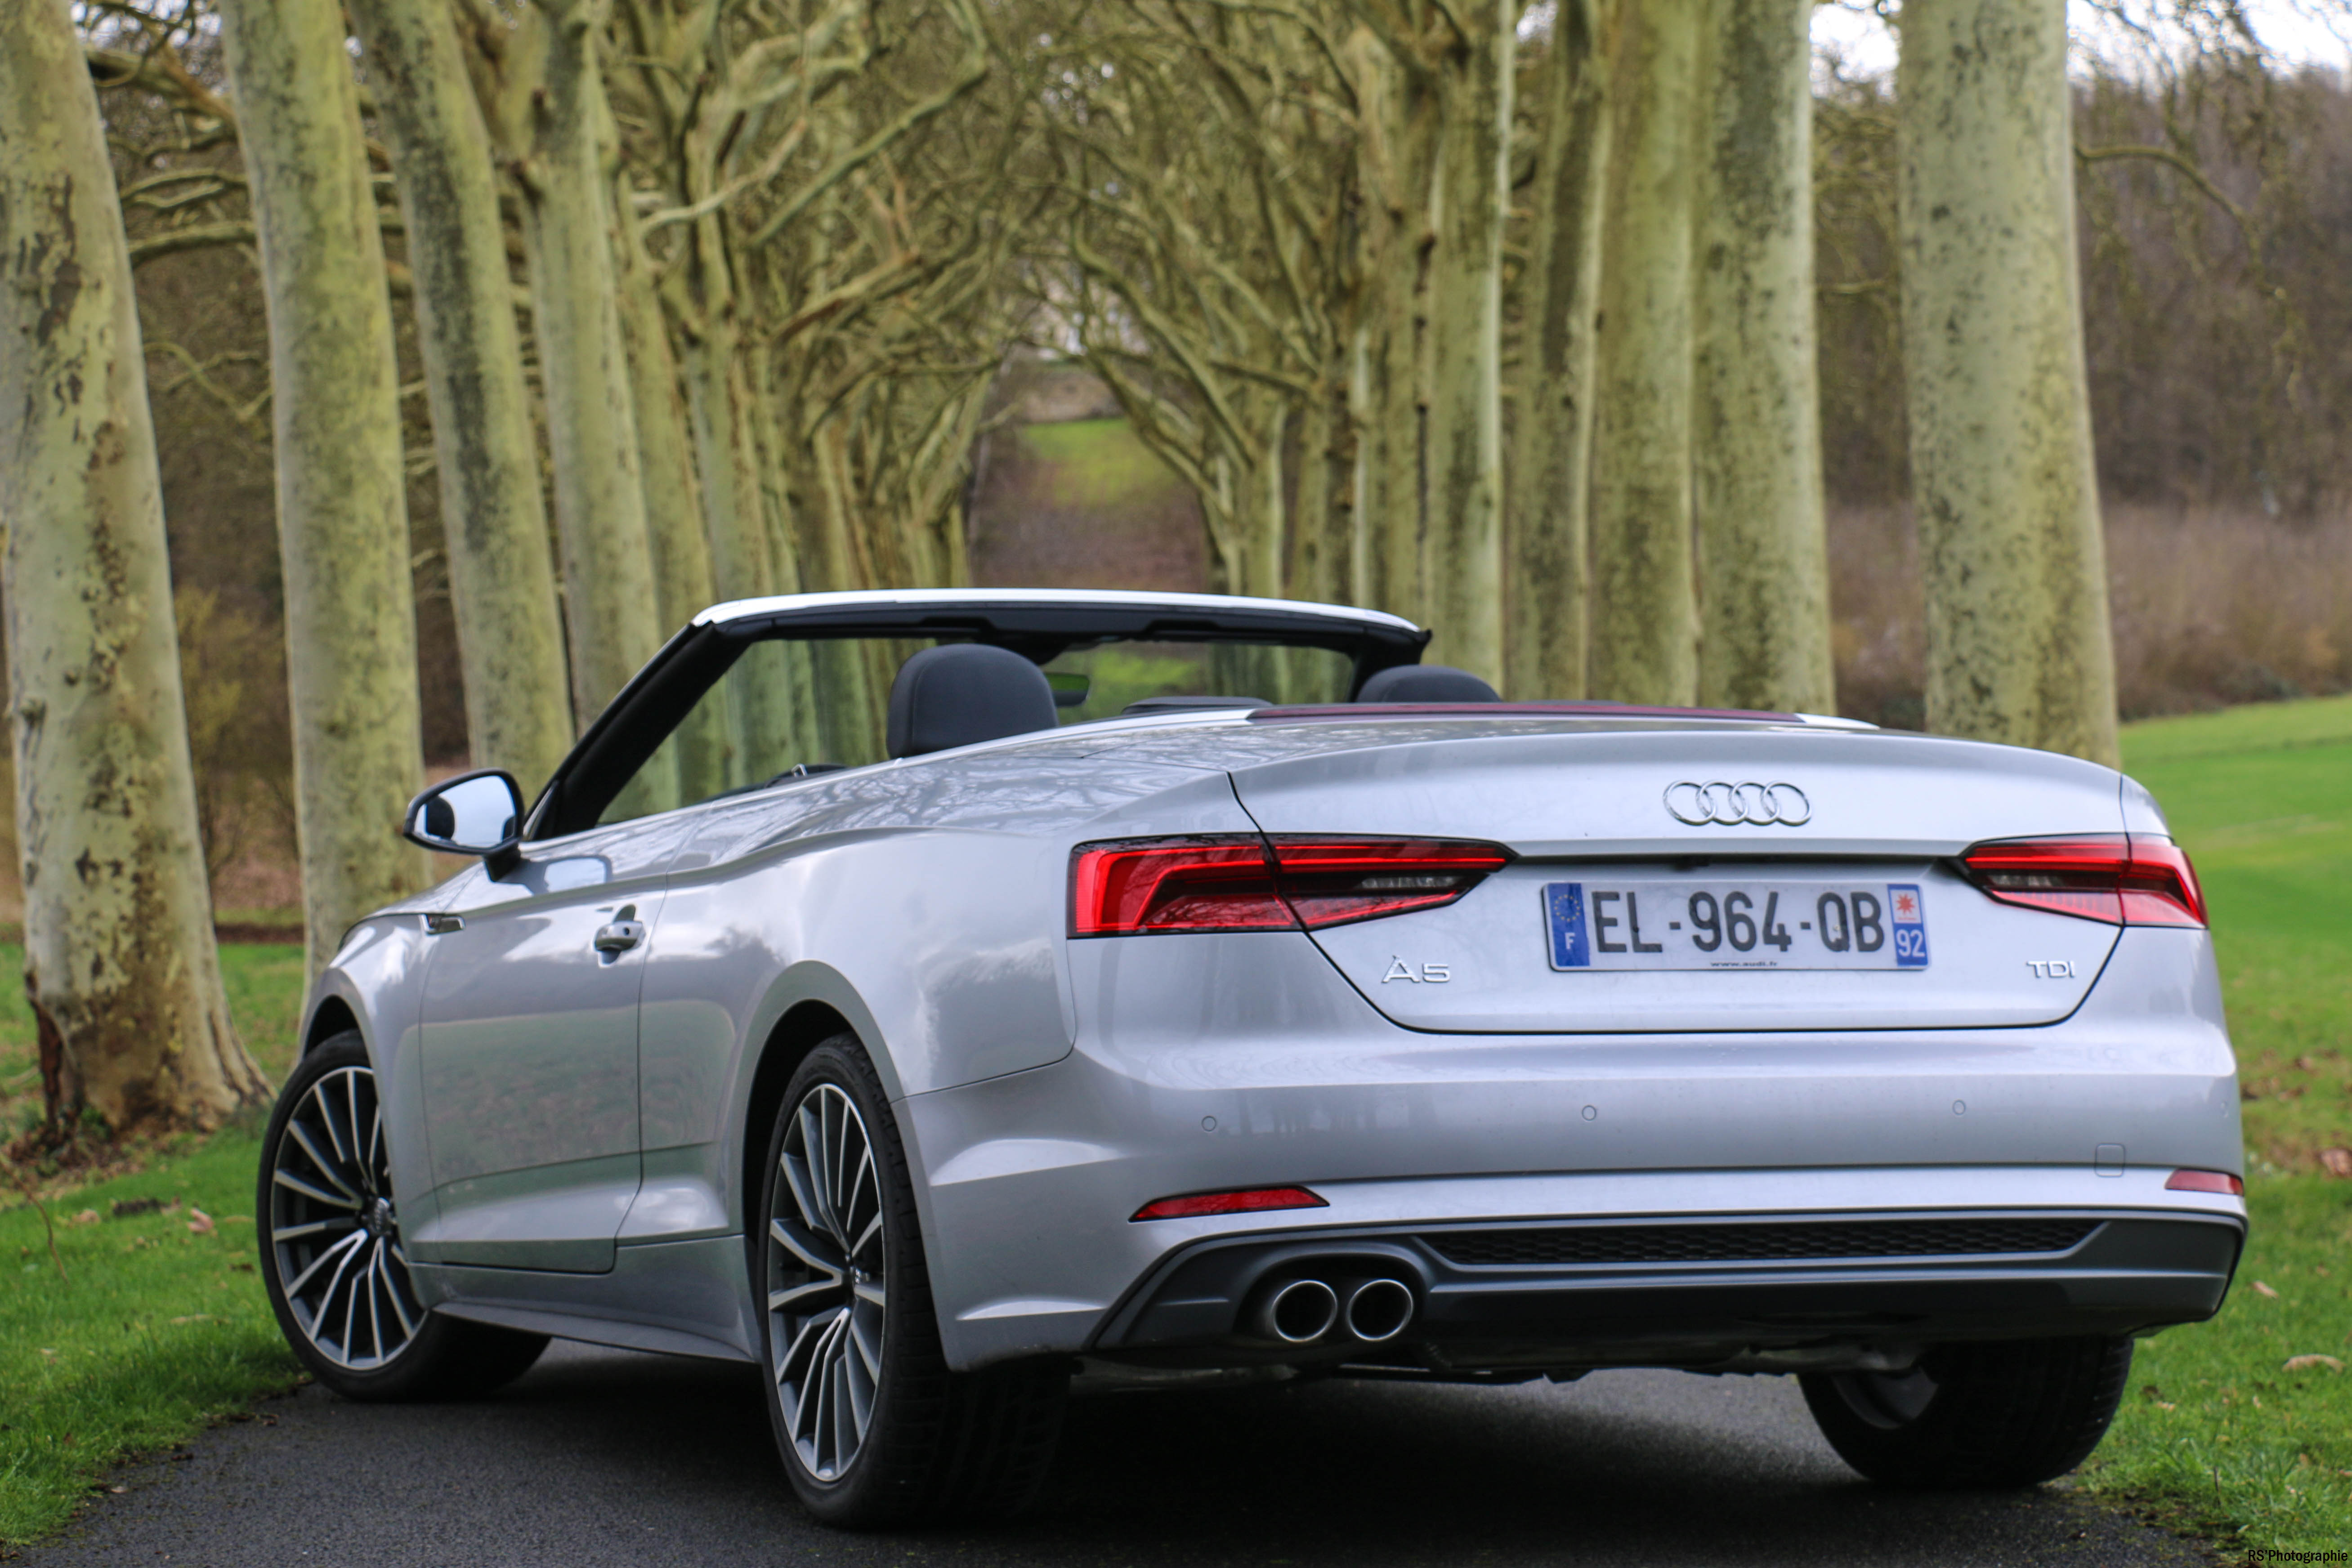 audia5cab3-audi-a5-190-tdi-cabriolet-arriere-rear-Arnaud Demasier-RSPhotographie